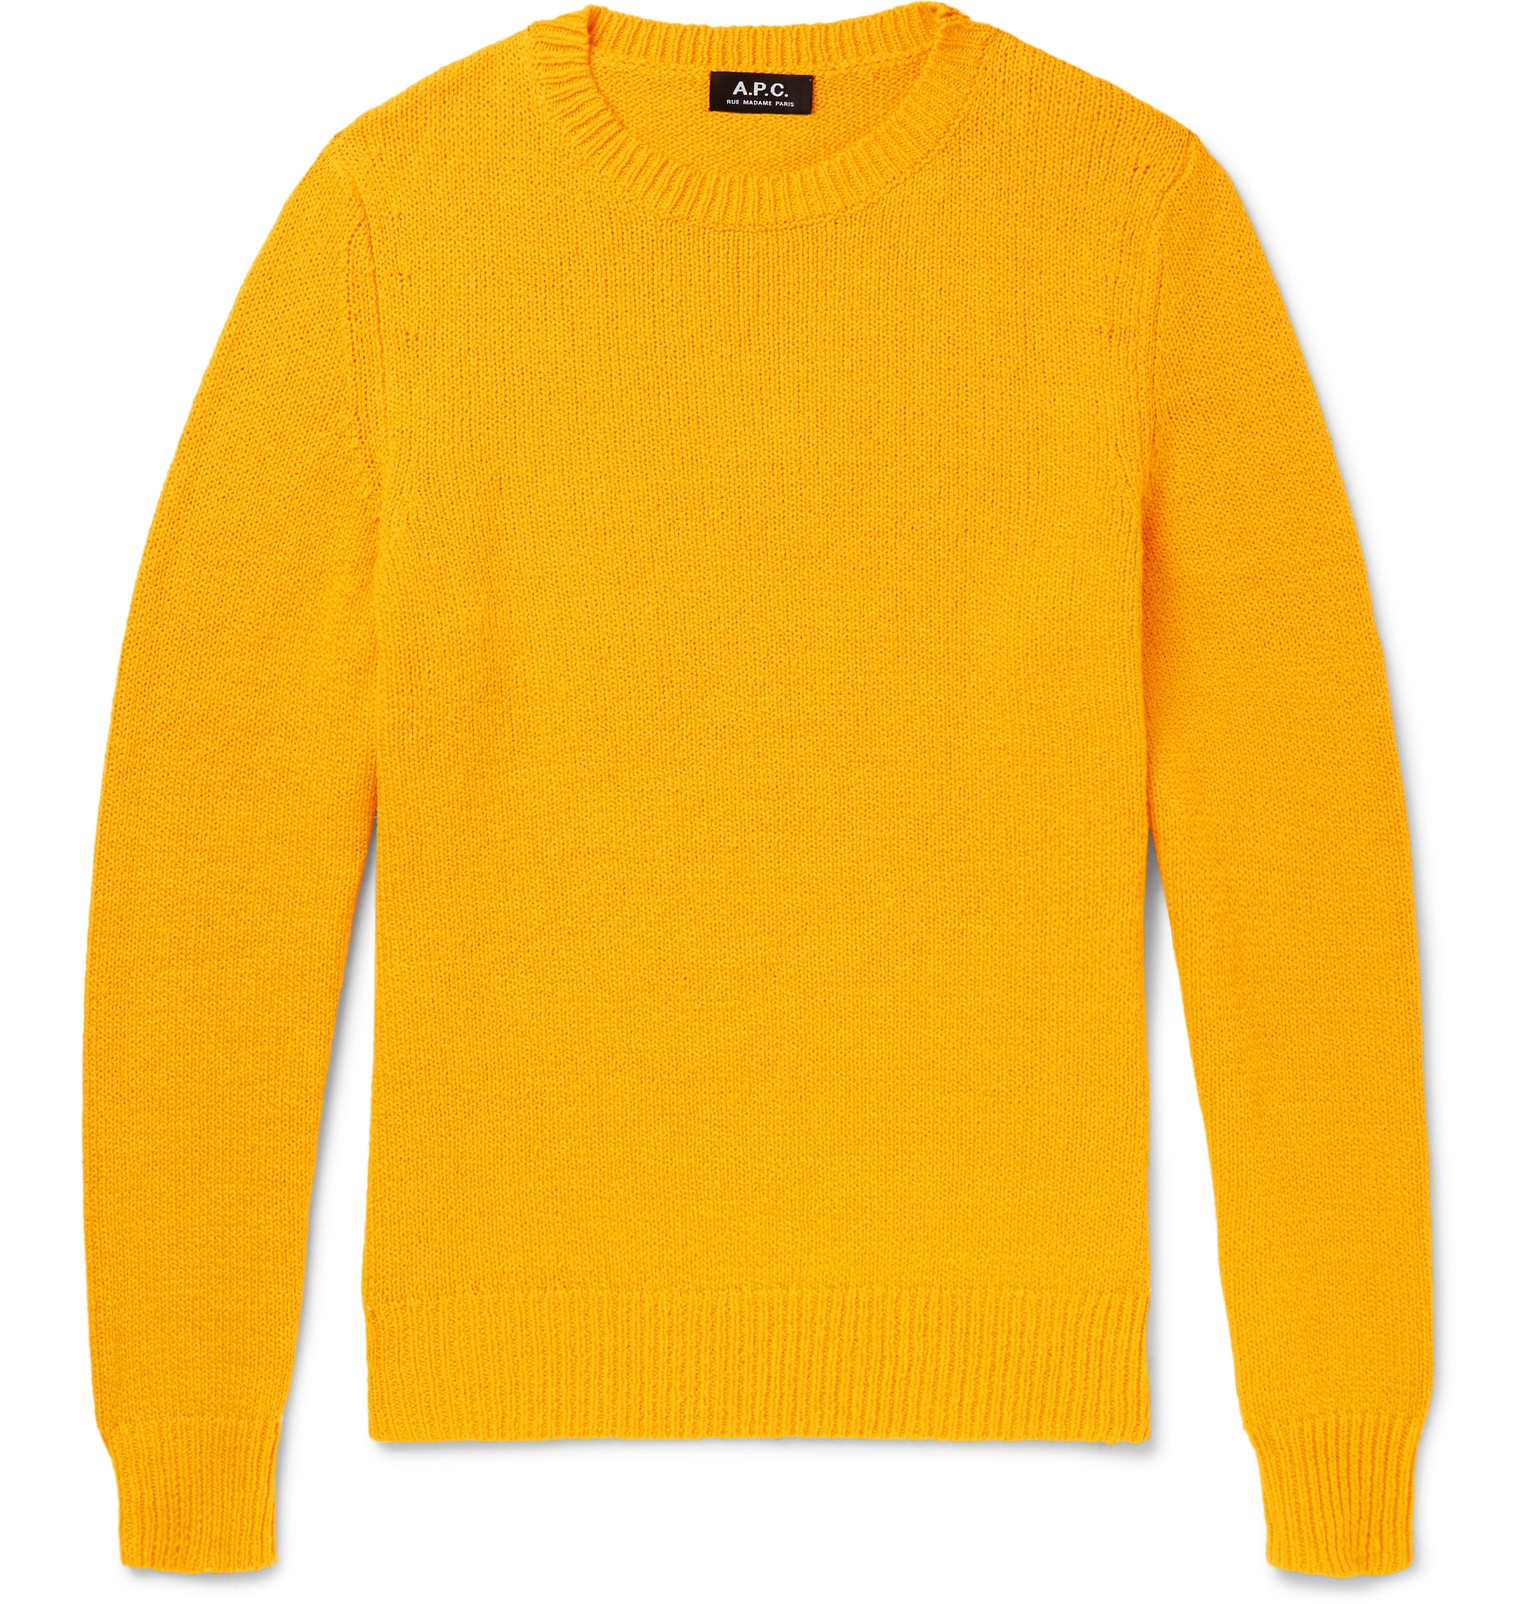 A.P.C. - Pull Lagoon Cotton Sweater